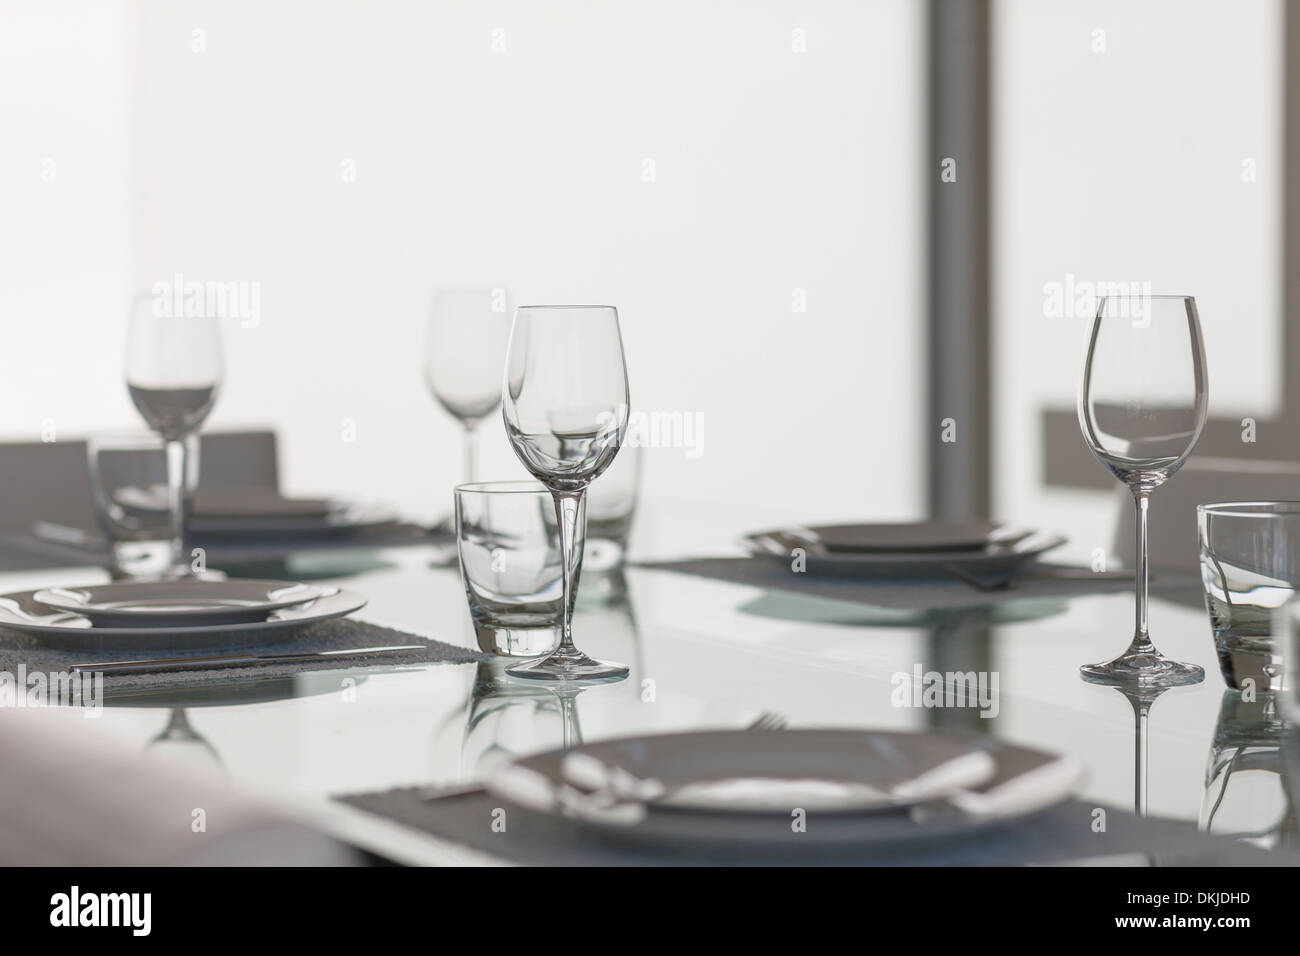 Set table in dining room - Stock Image